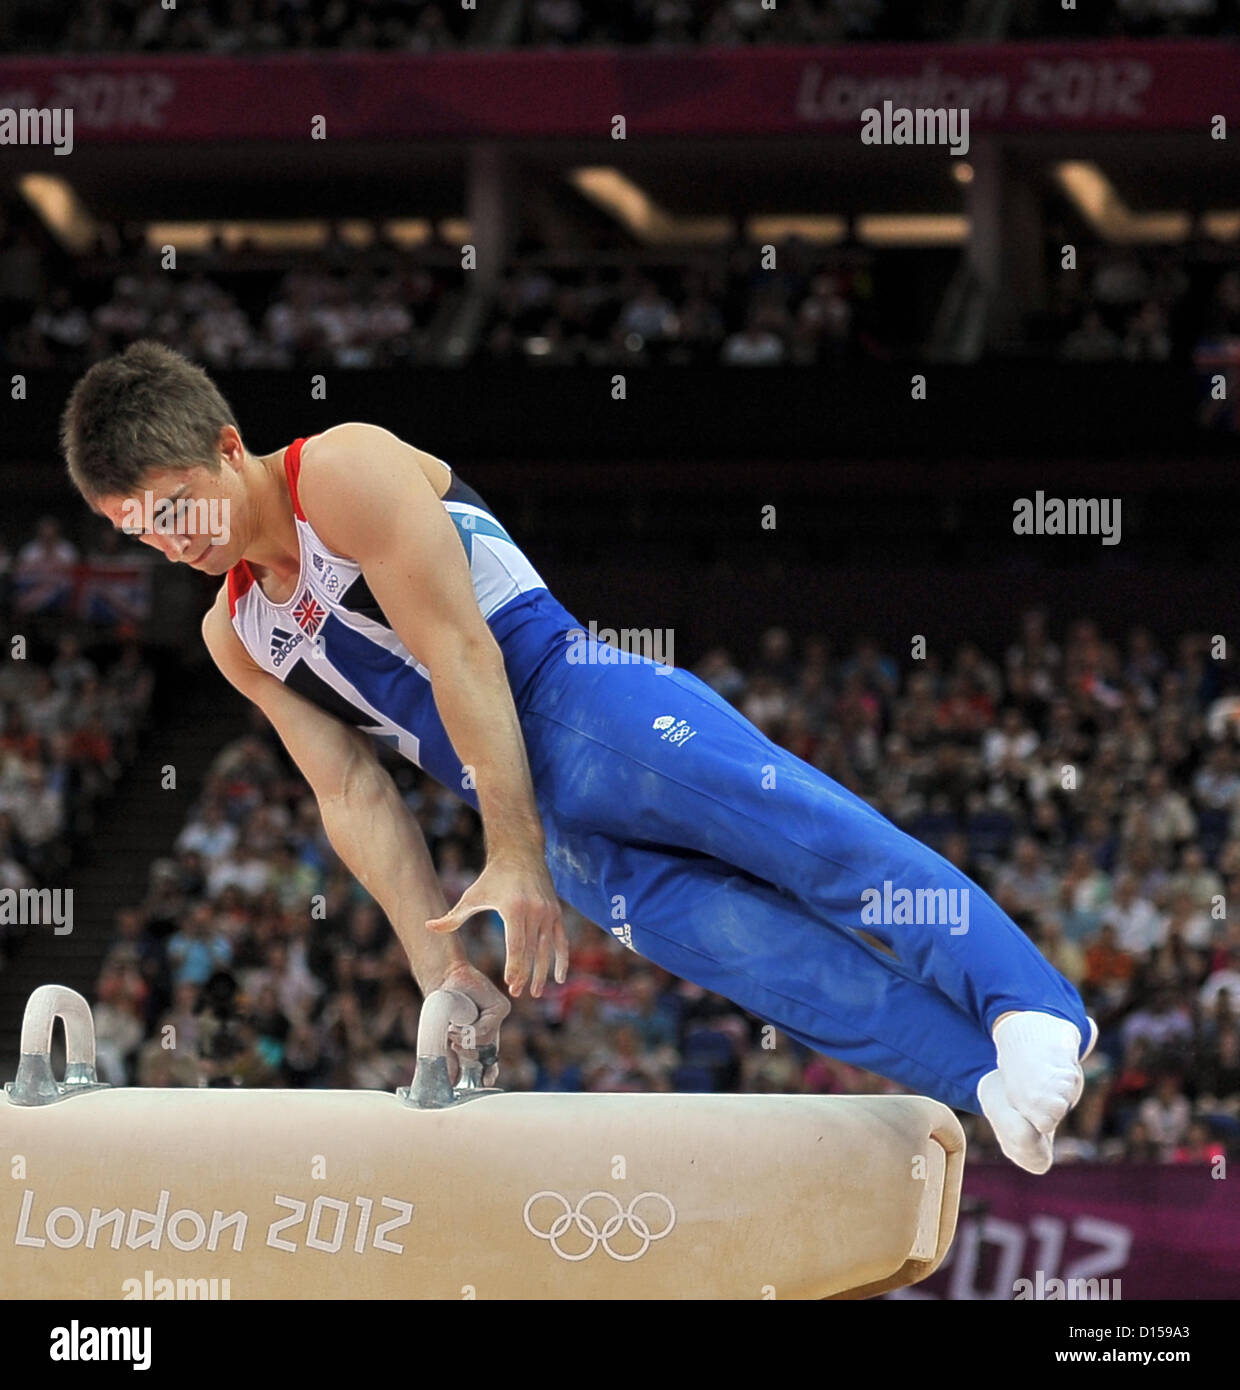 Max Whitlock (GBR, Great Britain). Individual Gymnastics - Stock Image